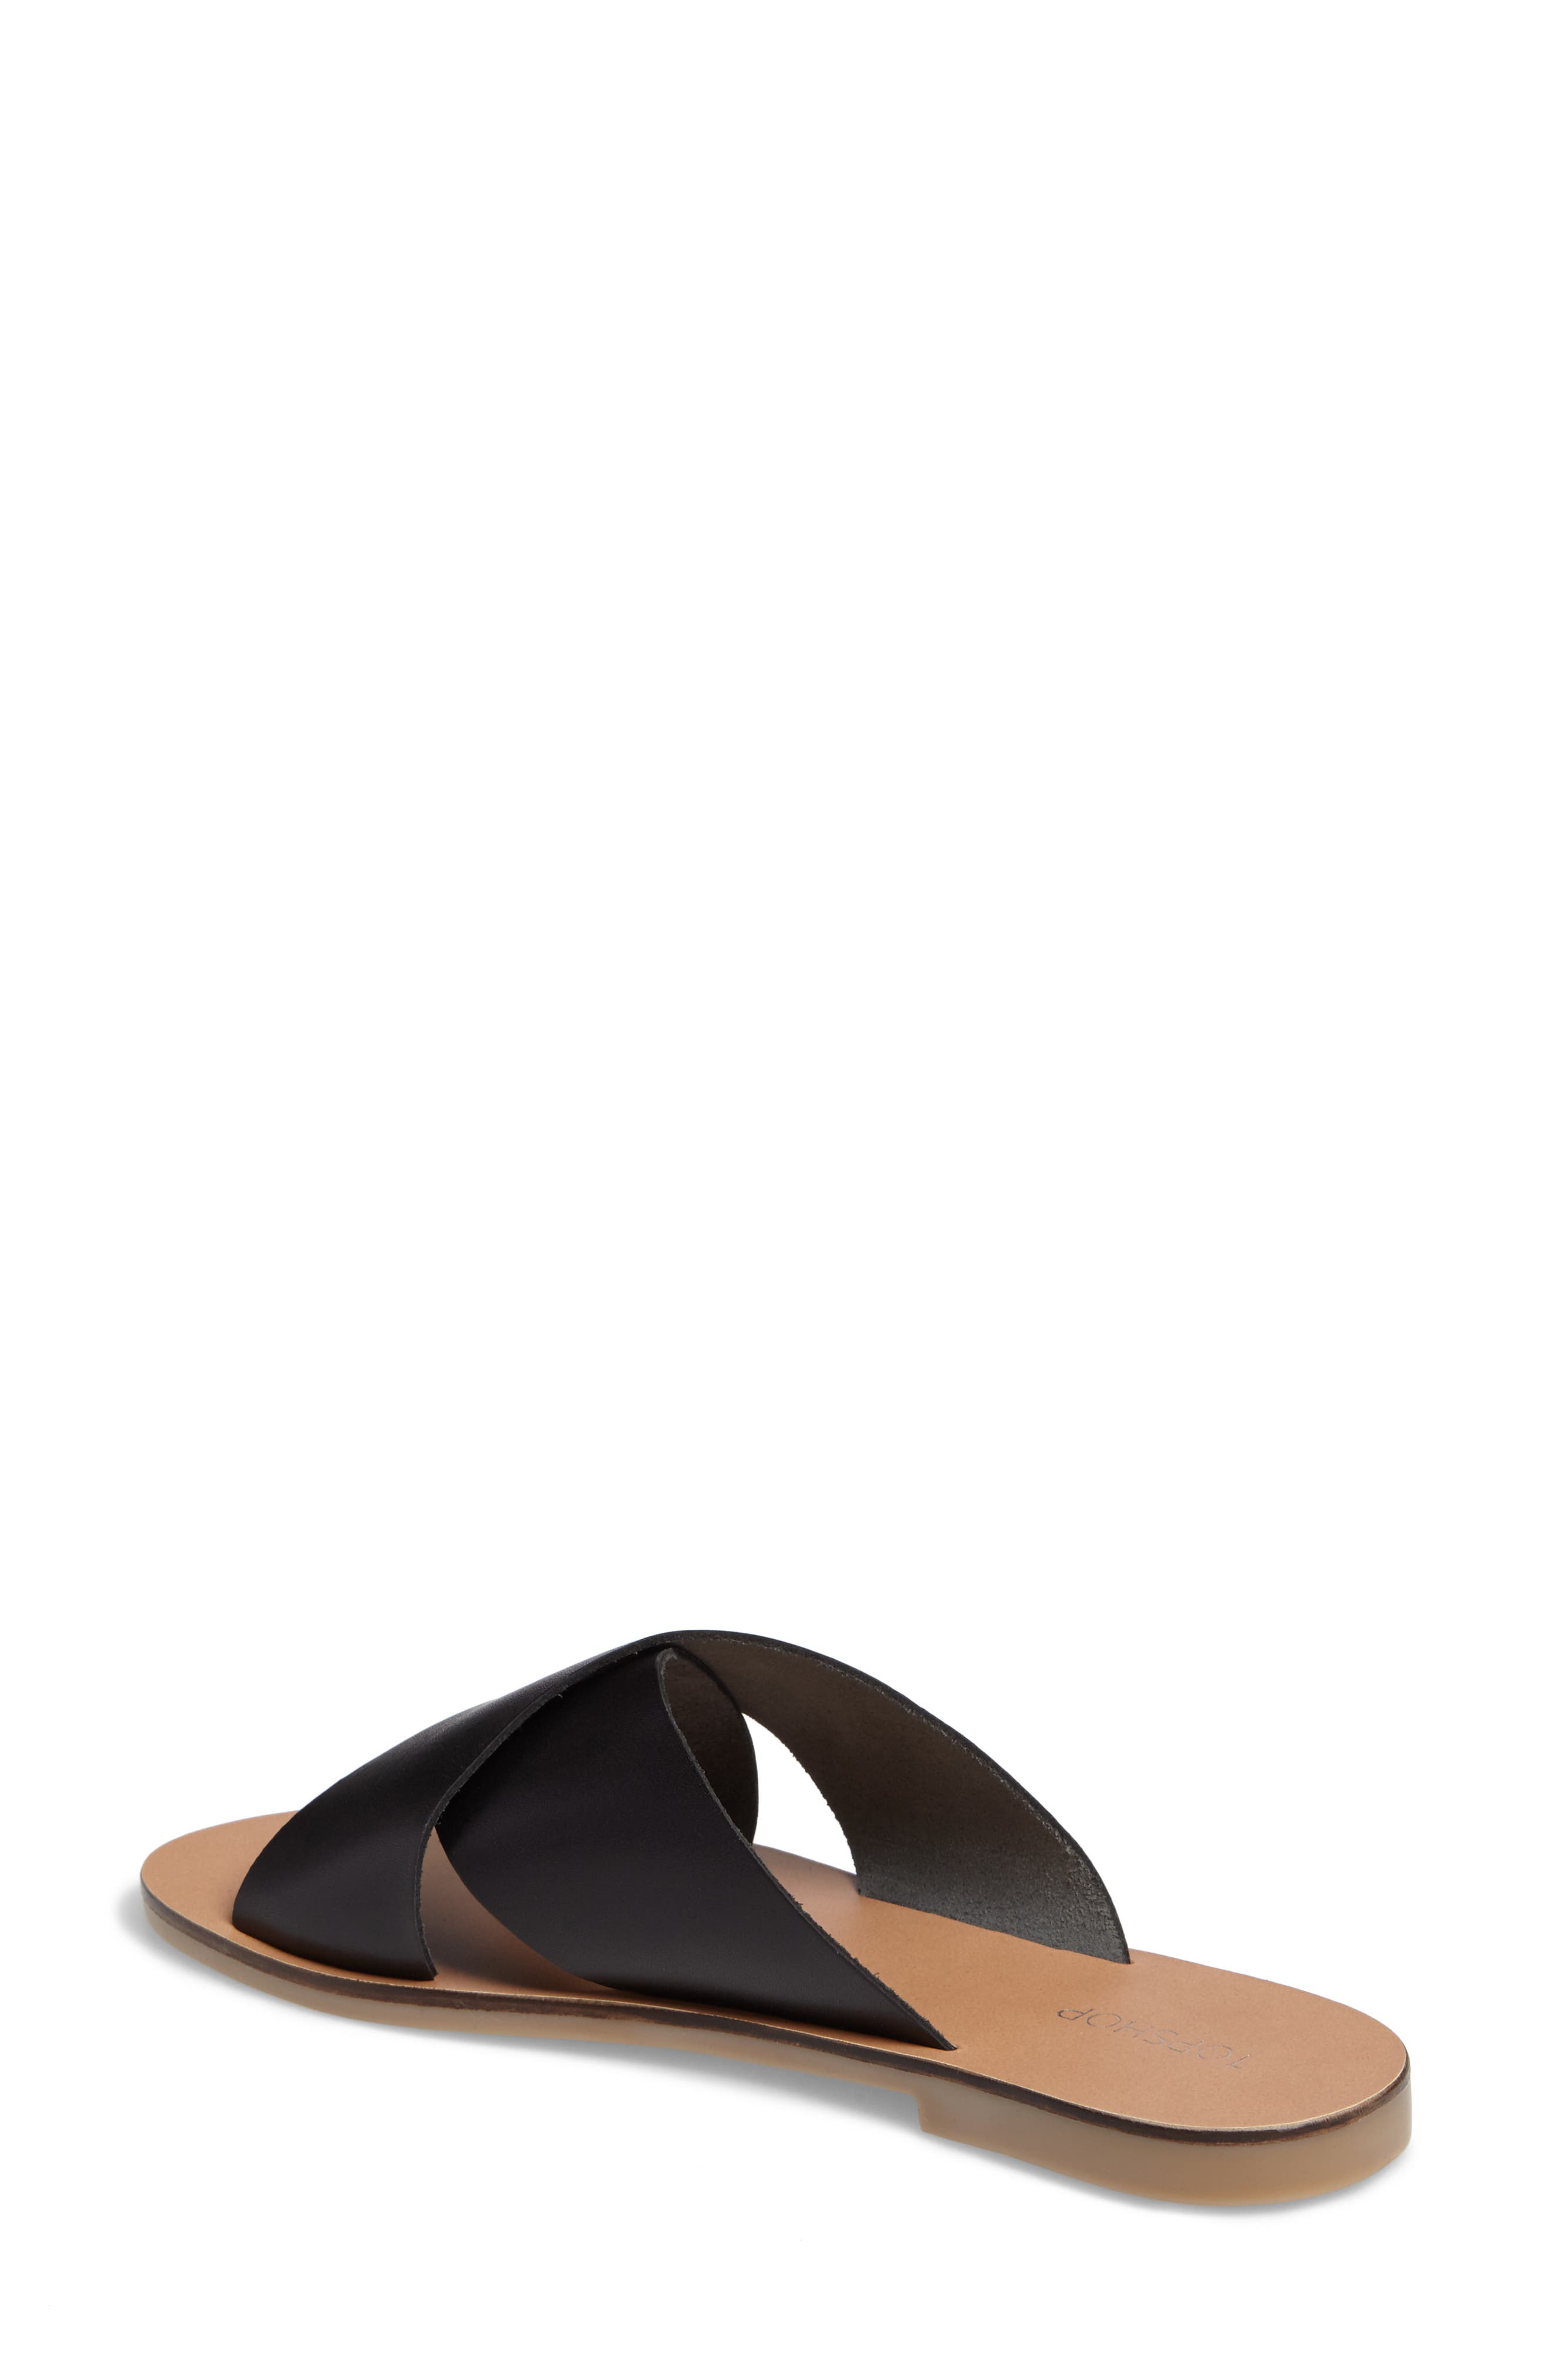 Alternate Image 2  - Topshop Holiday Cross Strap Sandal (Women)